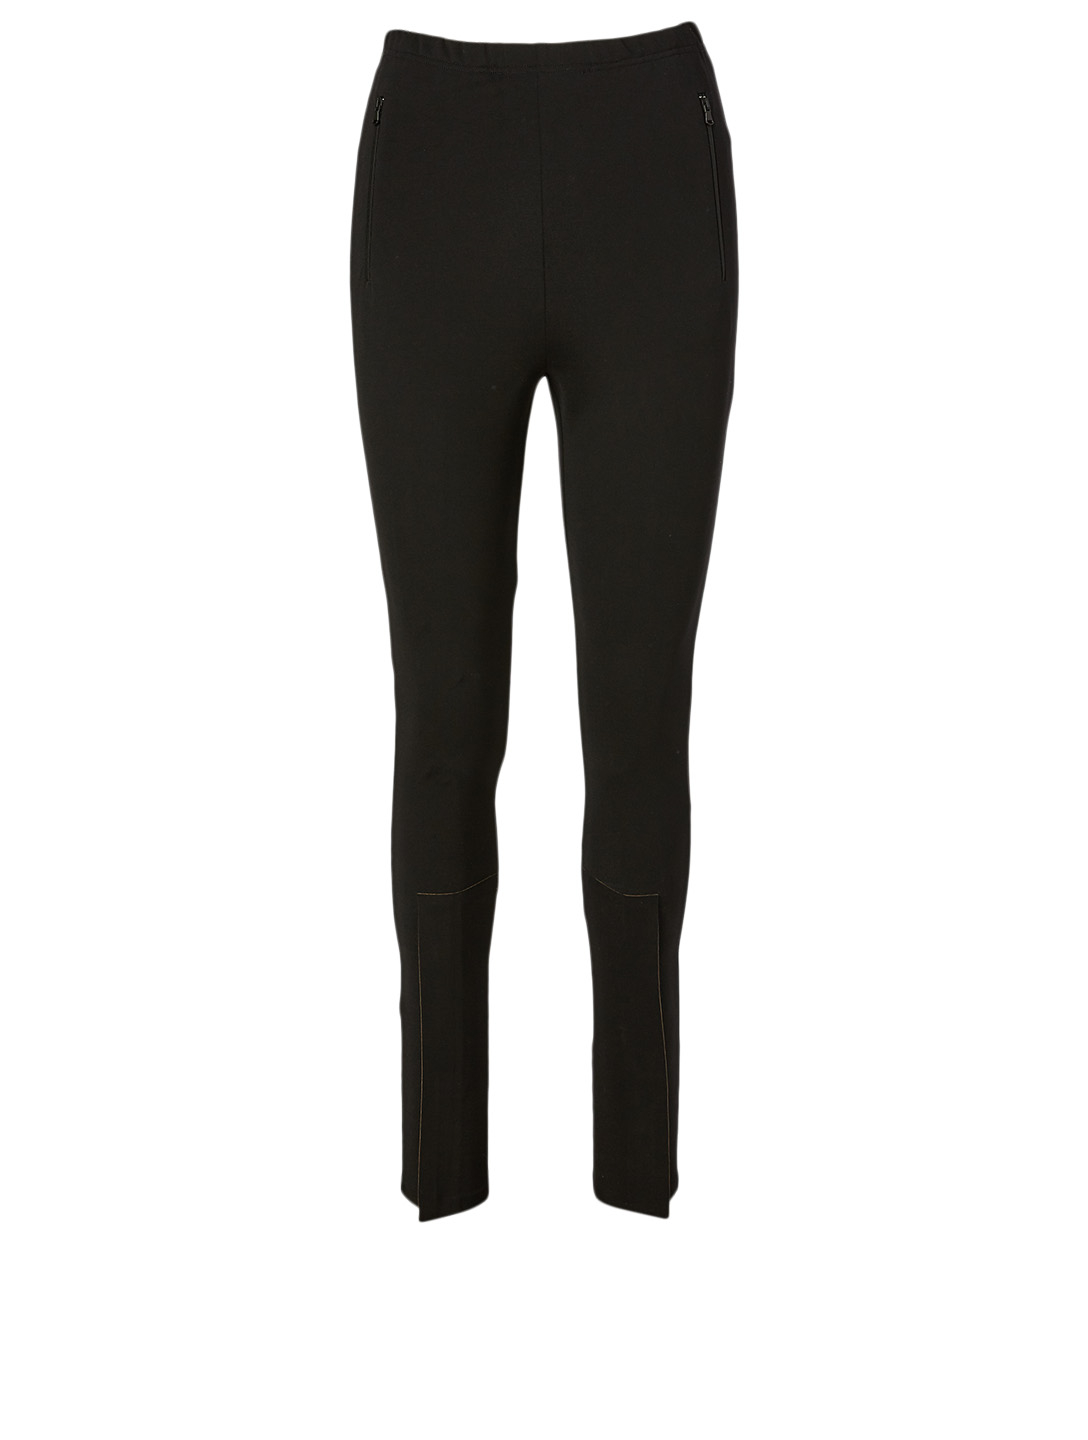 WARDROBE.NYC Slim Leggings With Zippers Women's Black